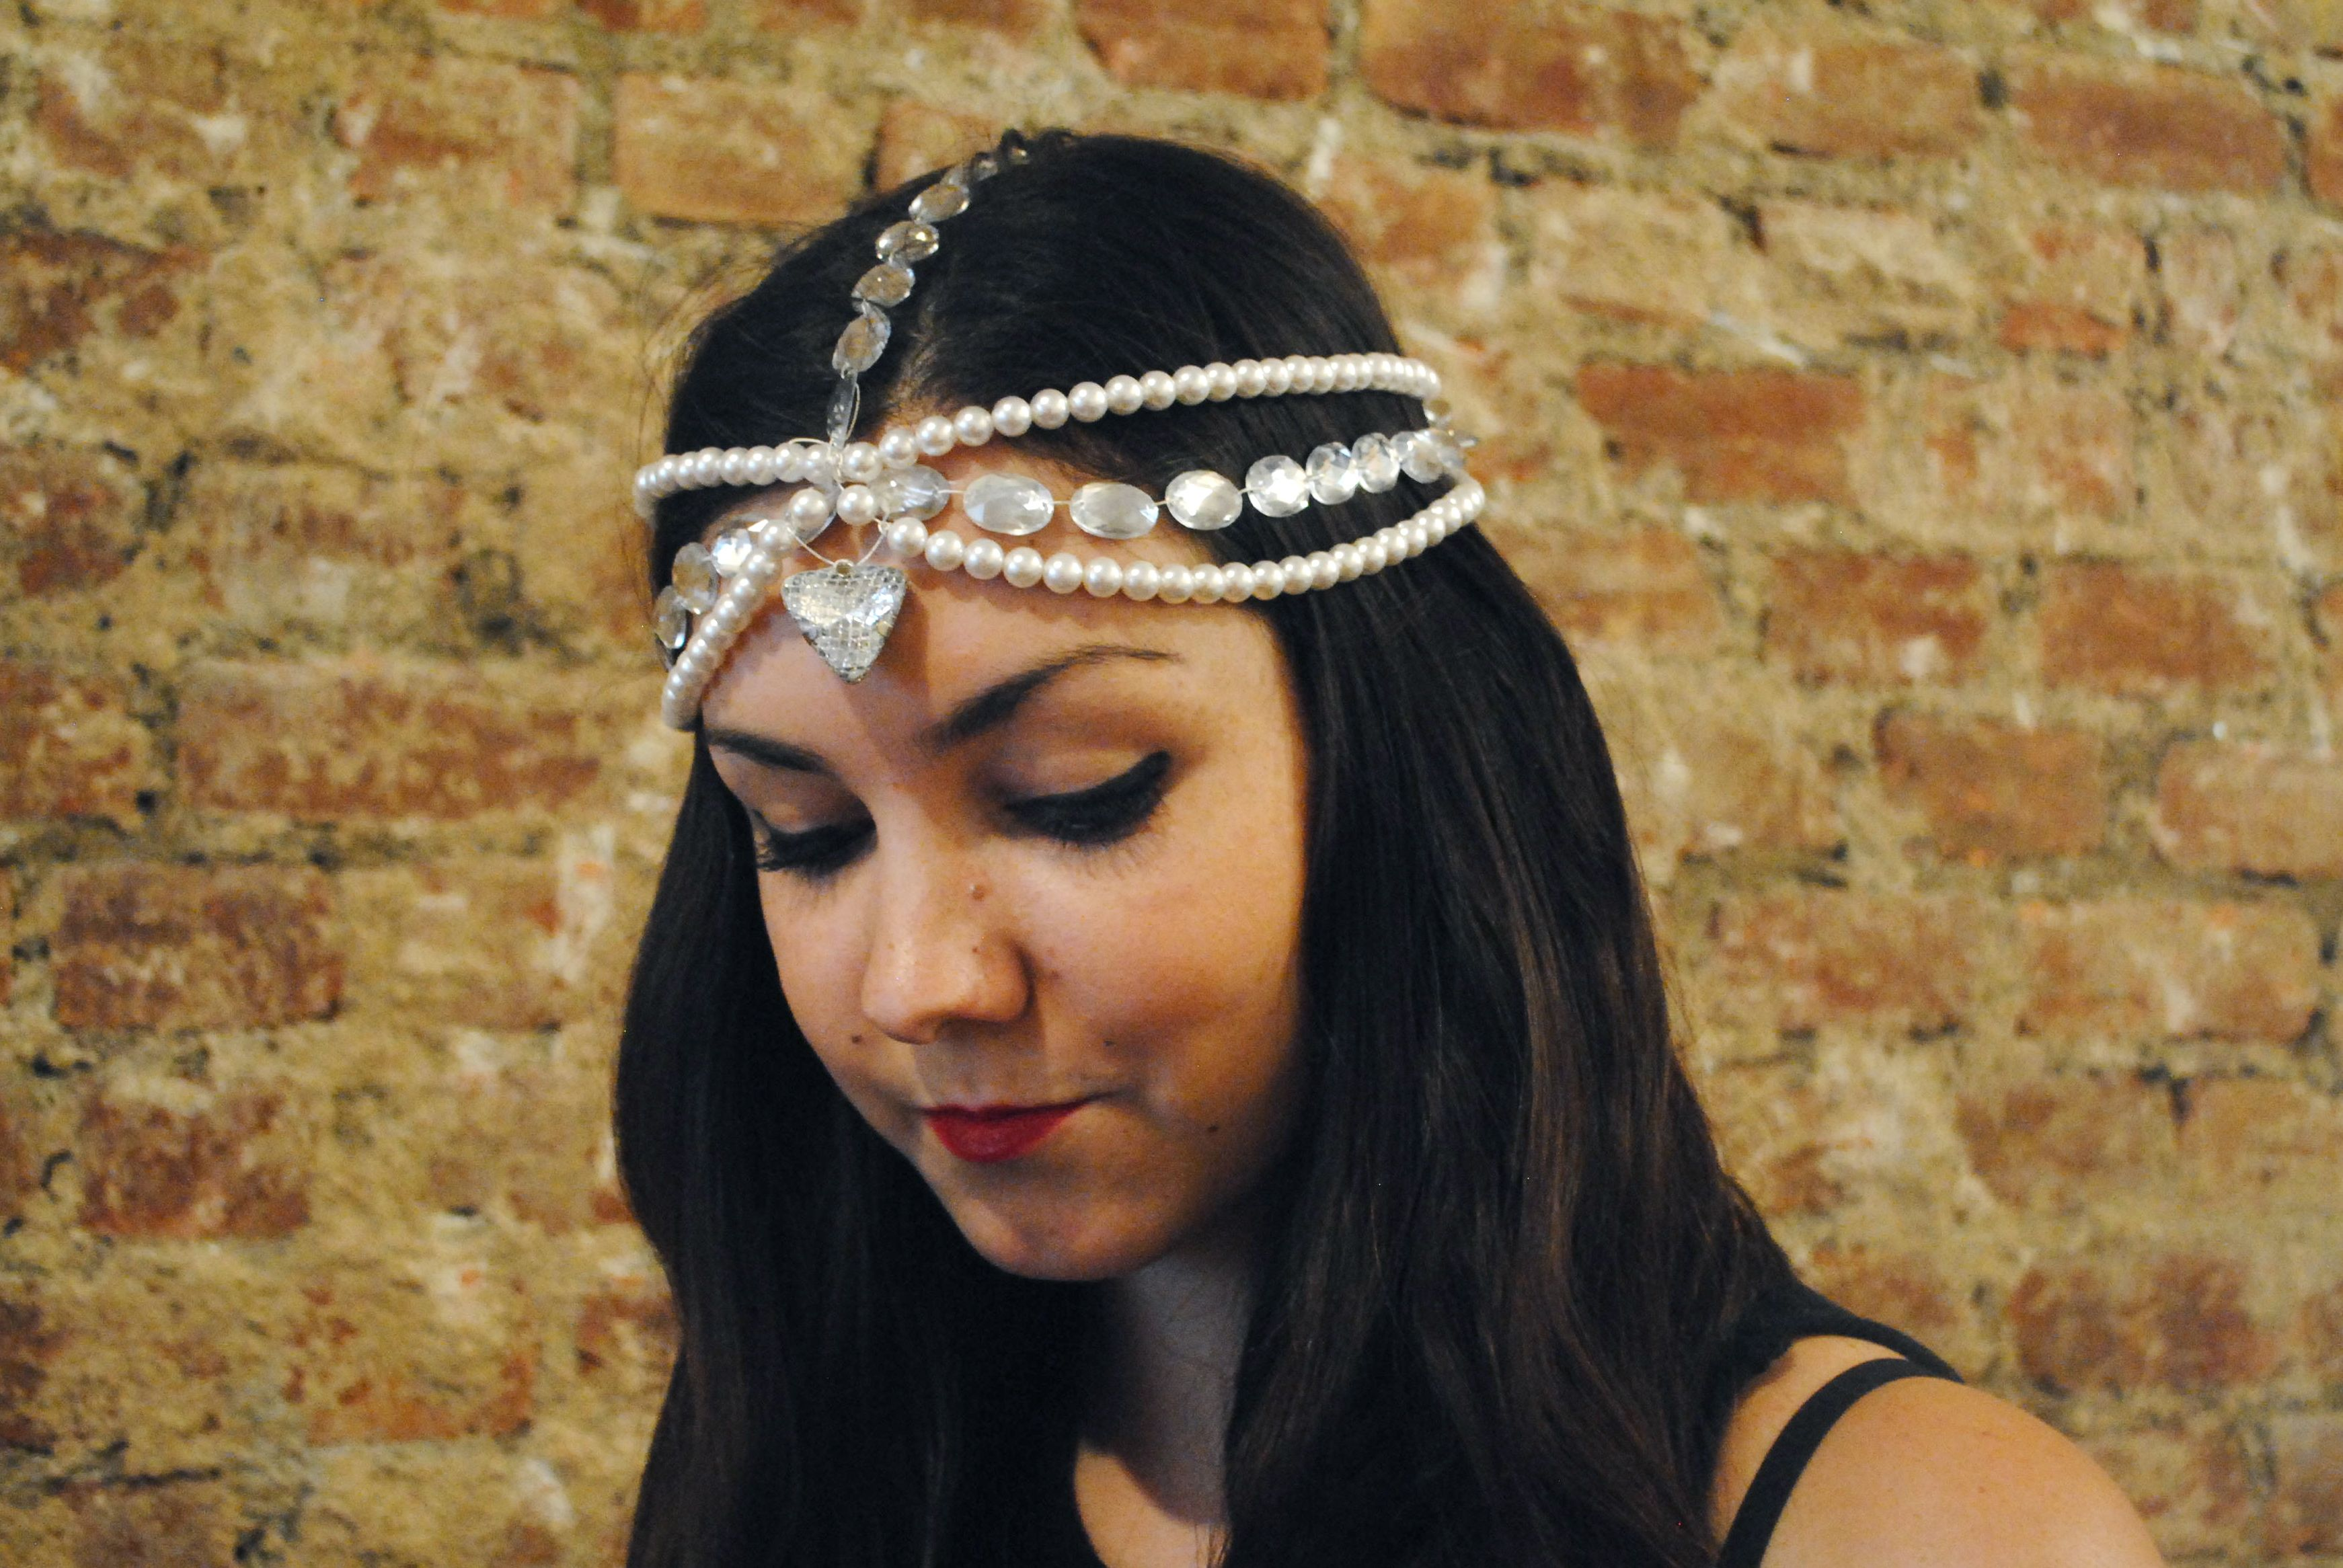 We wedding headpiece jewellery - Last Week We Shared This Street Style Snap Of Miroslava Duma Sporting An Elaborate Pearl Headpiece And We Were So Inspired That We Decided To Diy Our Own